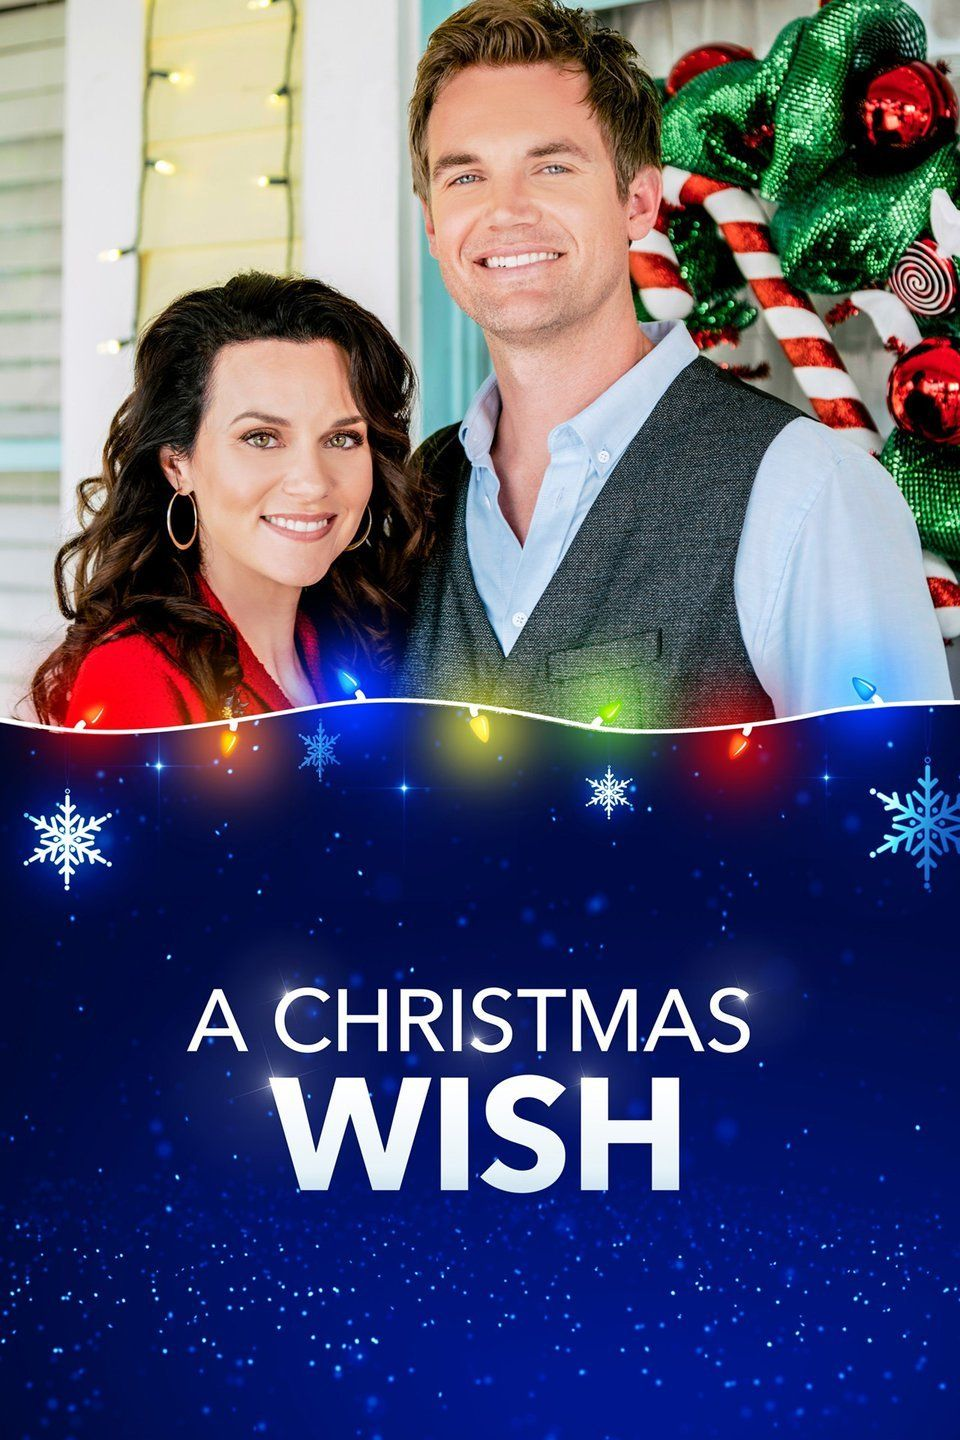 A Christmas Wish 2019 In 2020 Christmas Movies Movies 2019 Hallmark Christmas Movies